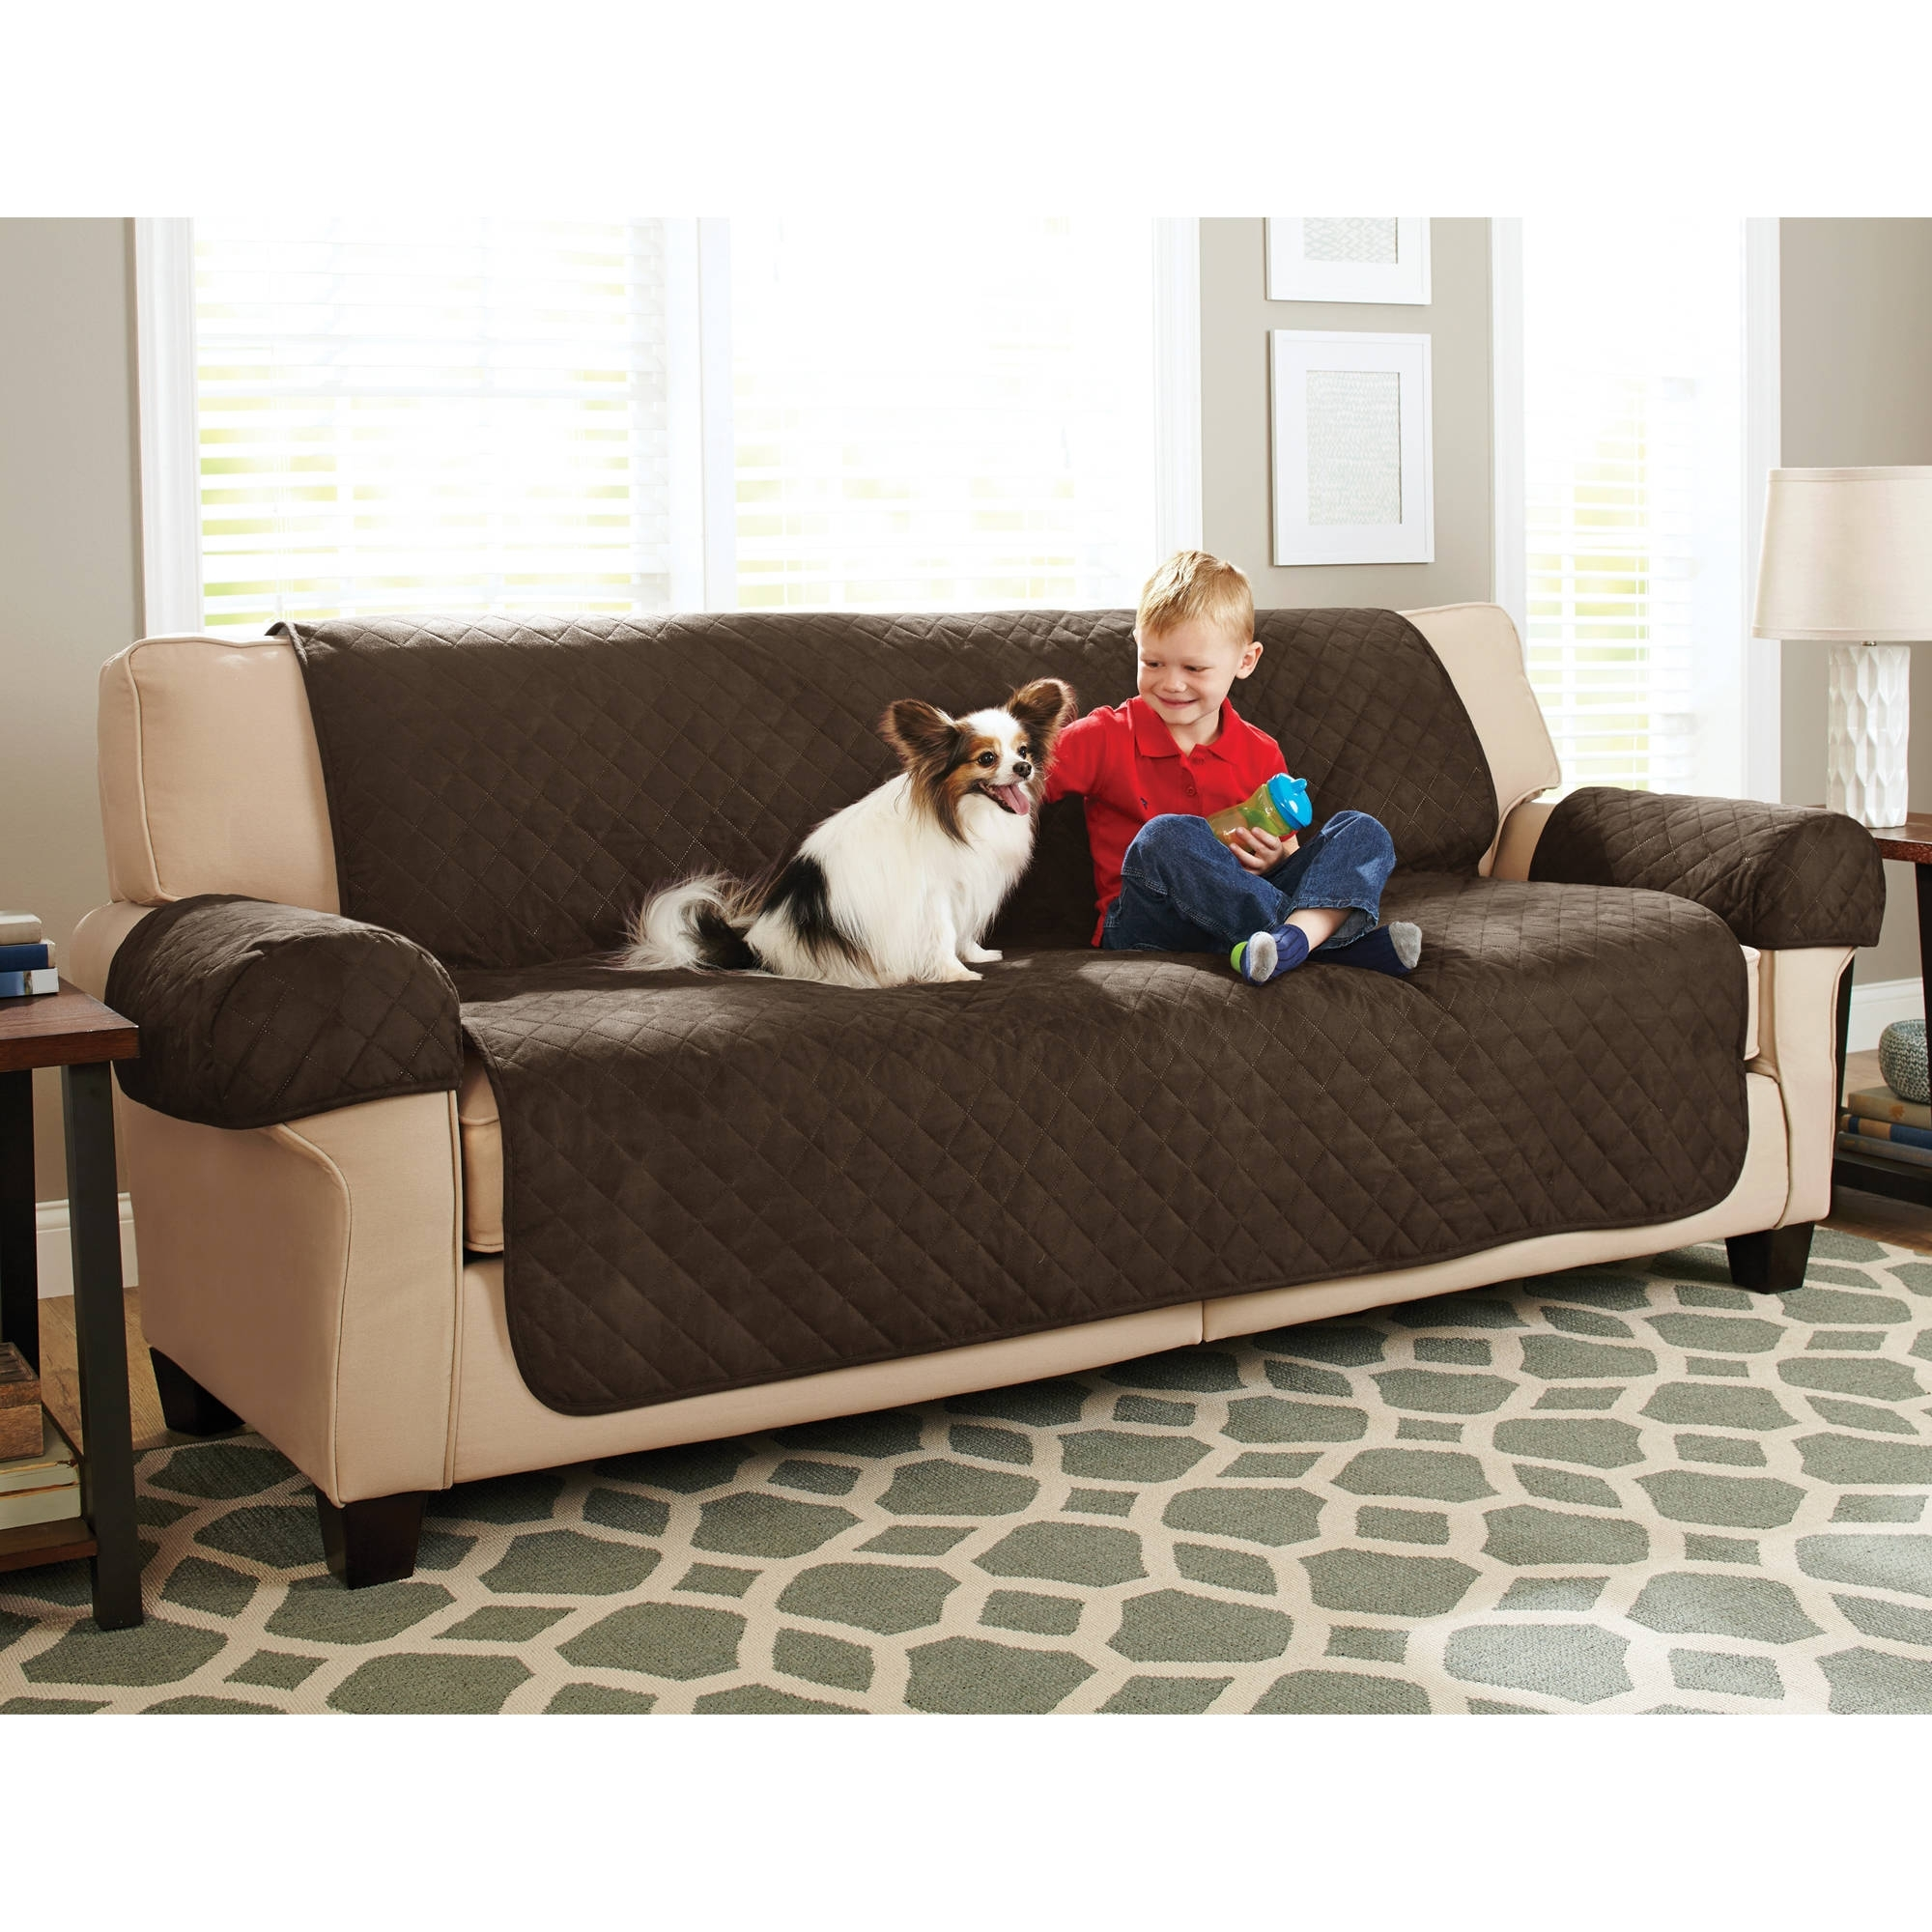 Better Homes And Gardens Waterproof Non Slip Faux Suede Pet Intended For 2018 Sofas With Washable Covers (View 8 of 20)